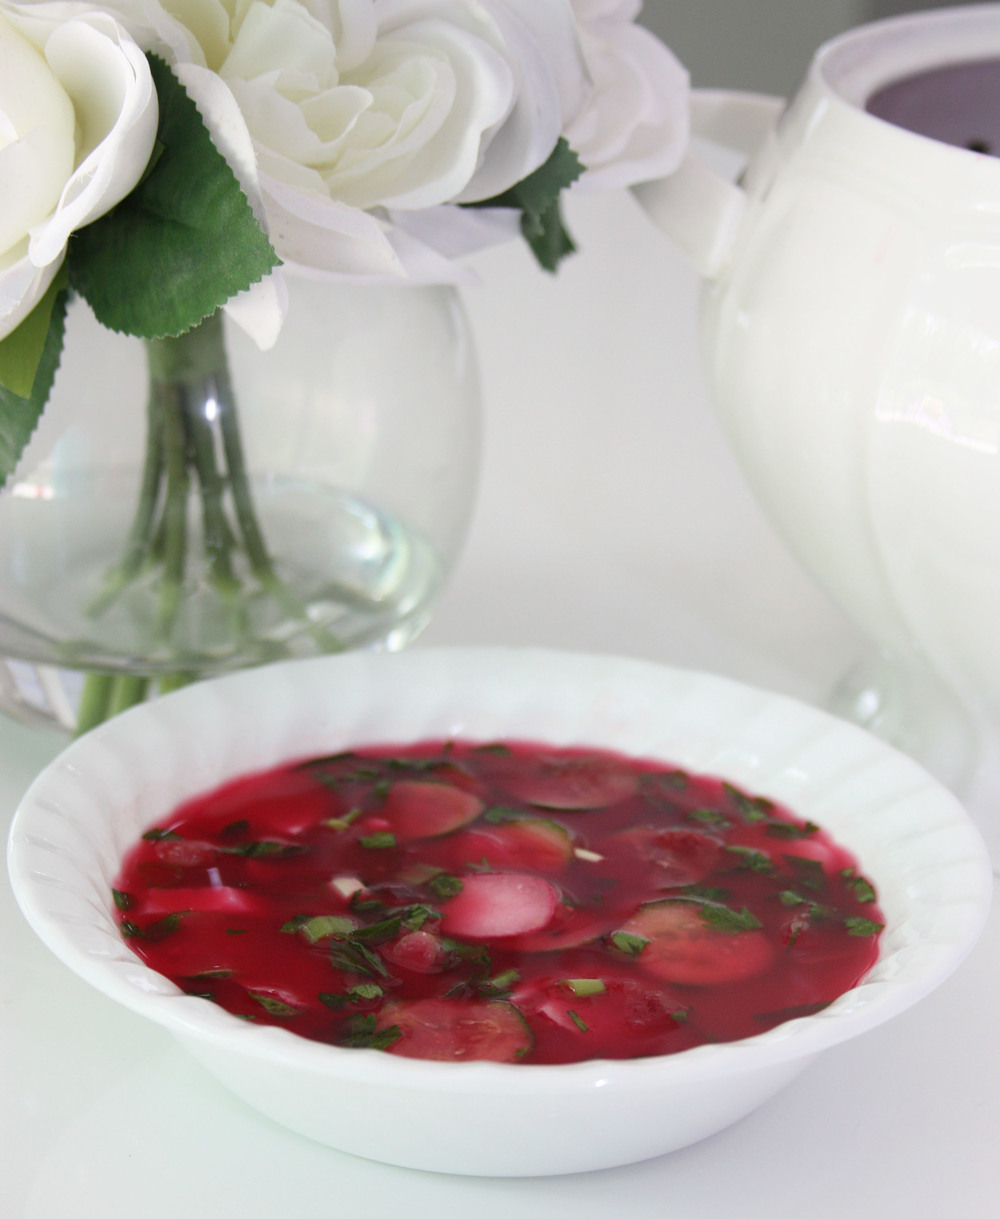 beetroot cold soup